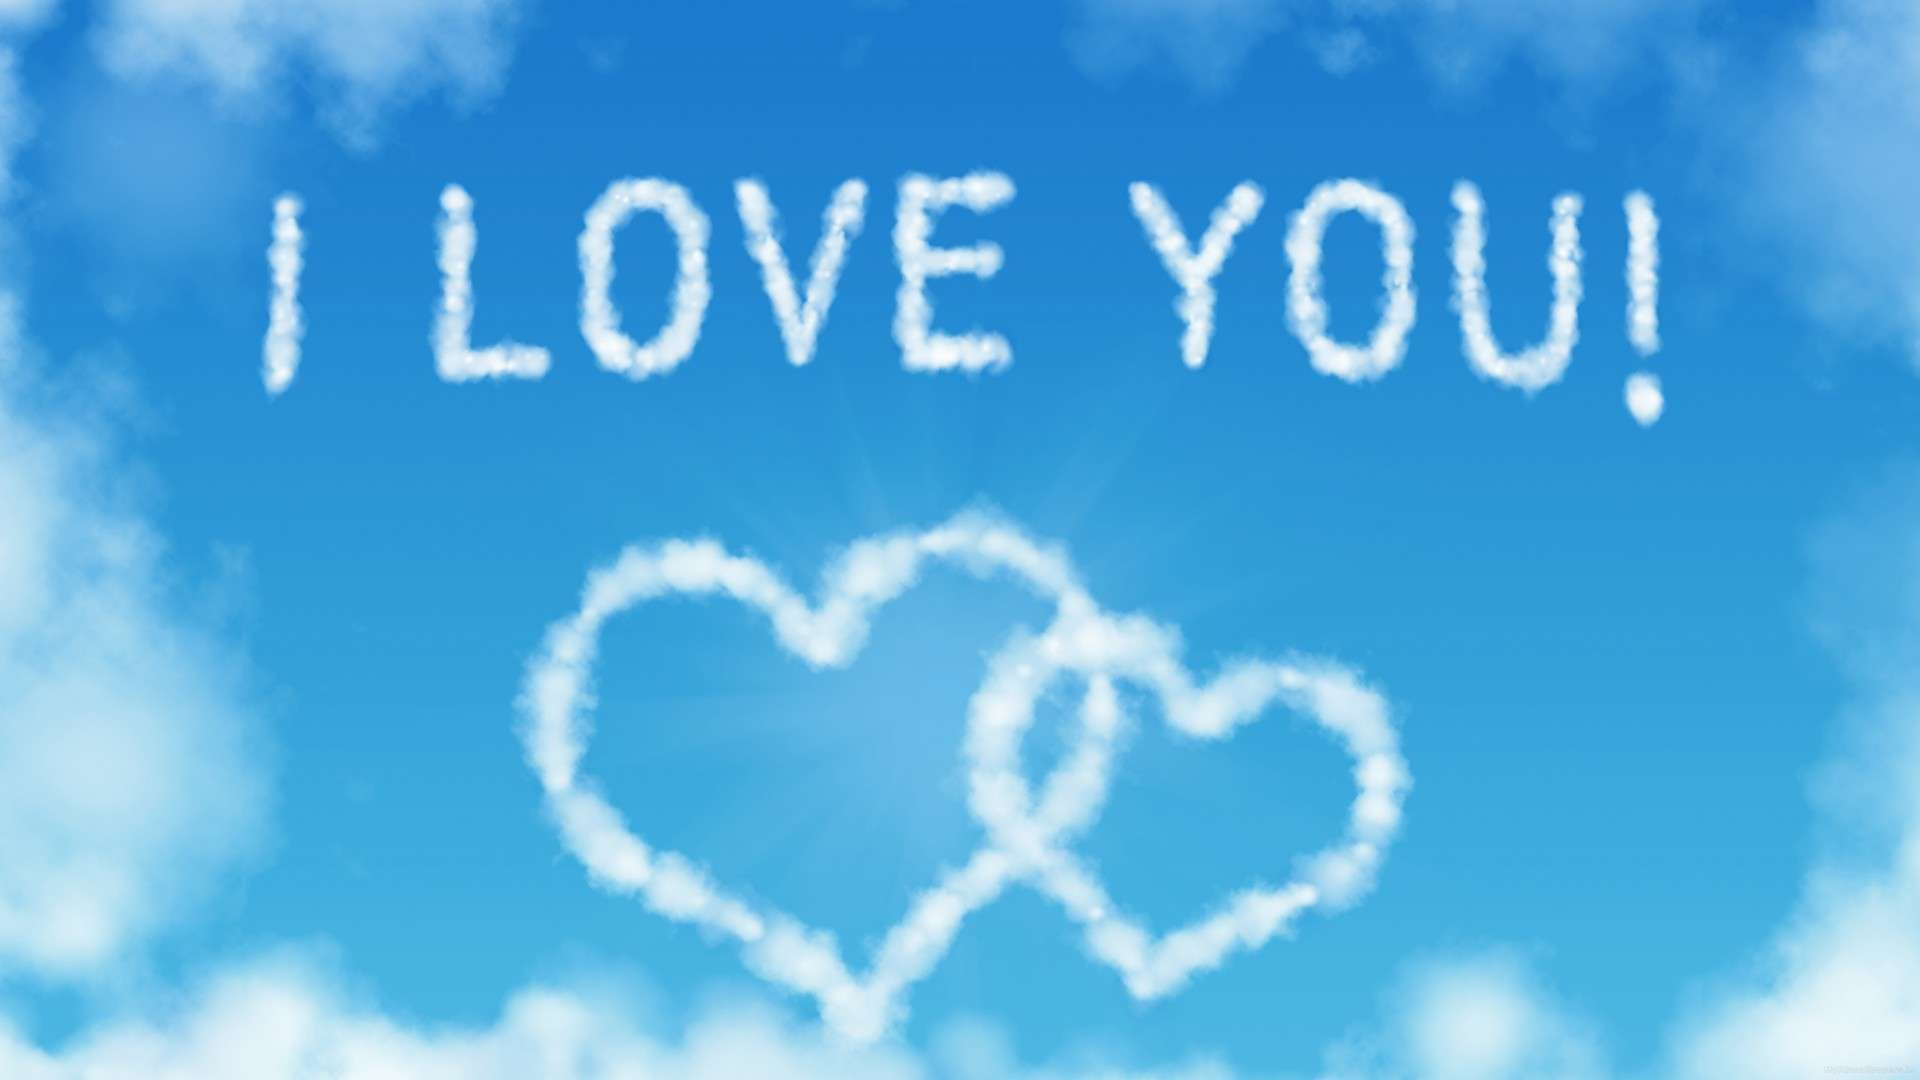 Wallpaper I Love You Hd : I Love You Hd Wallpaper Widescreen : Hd Wallpapers